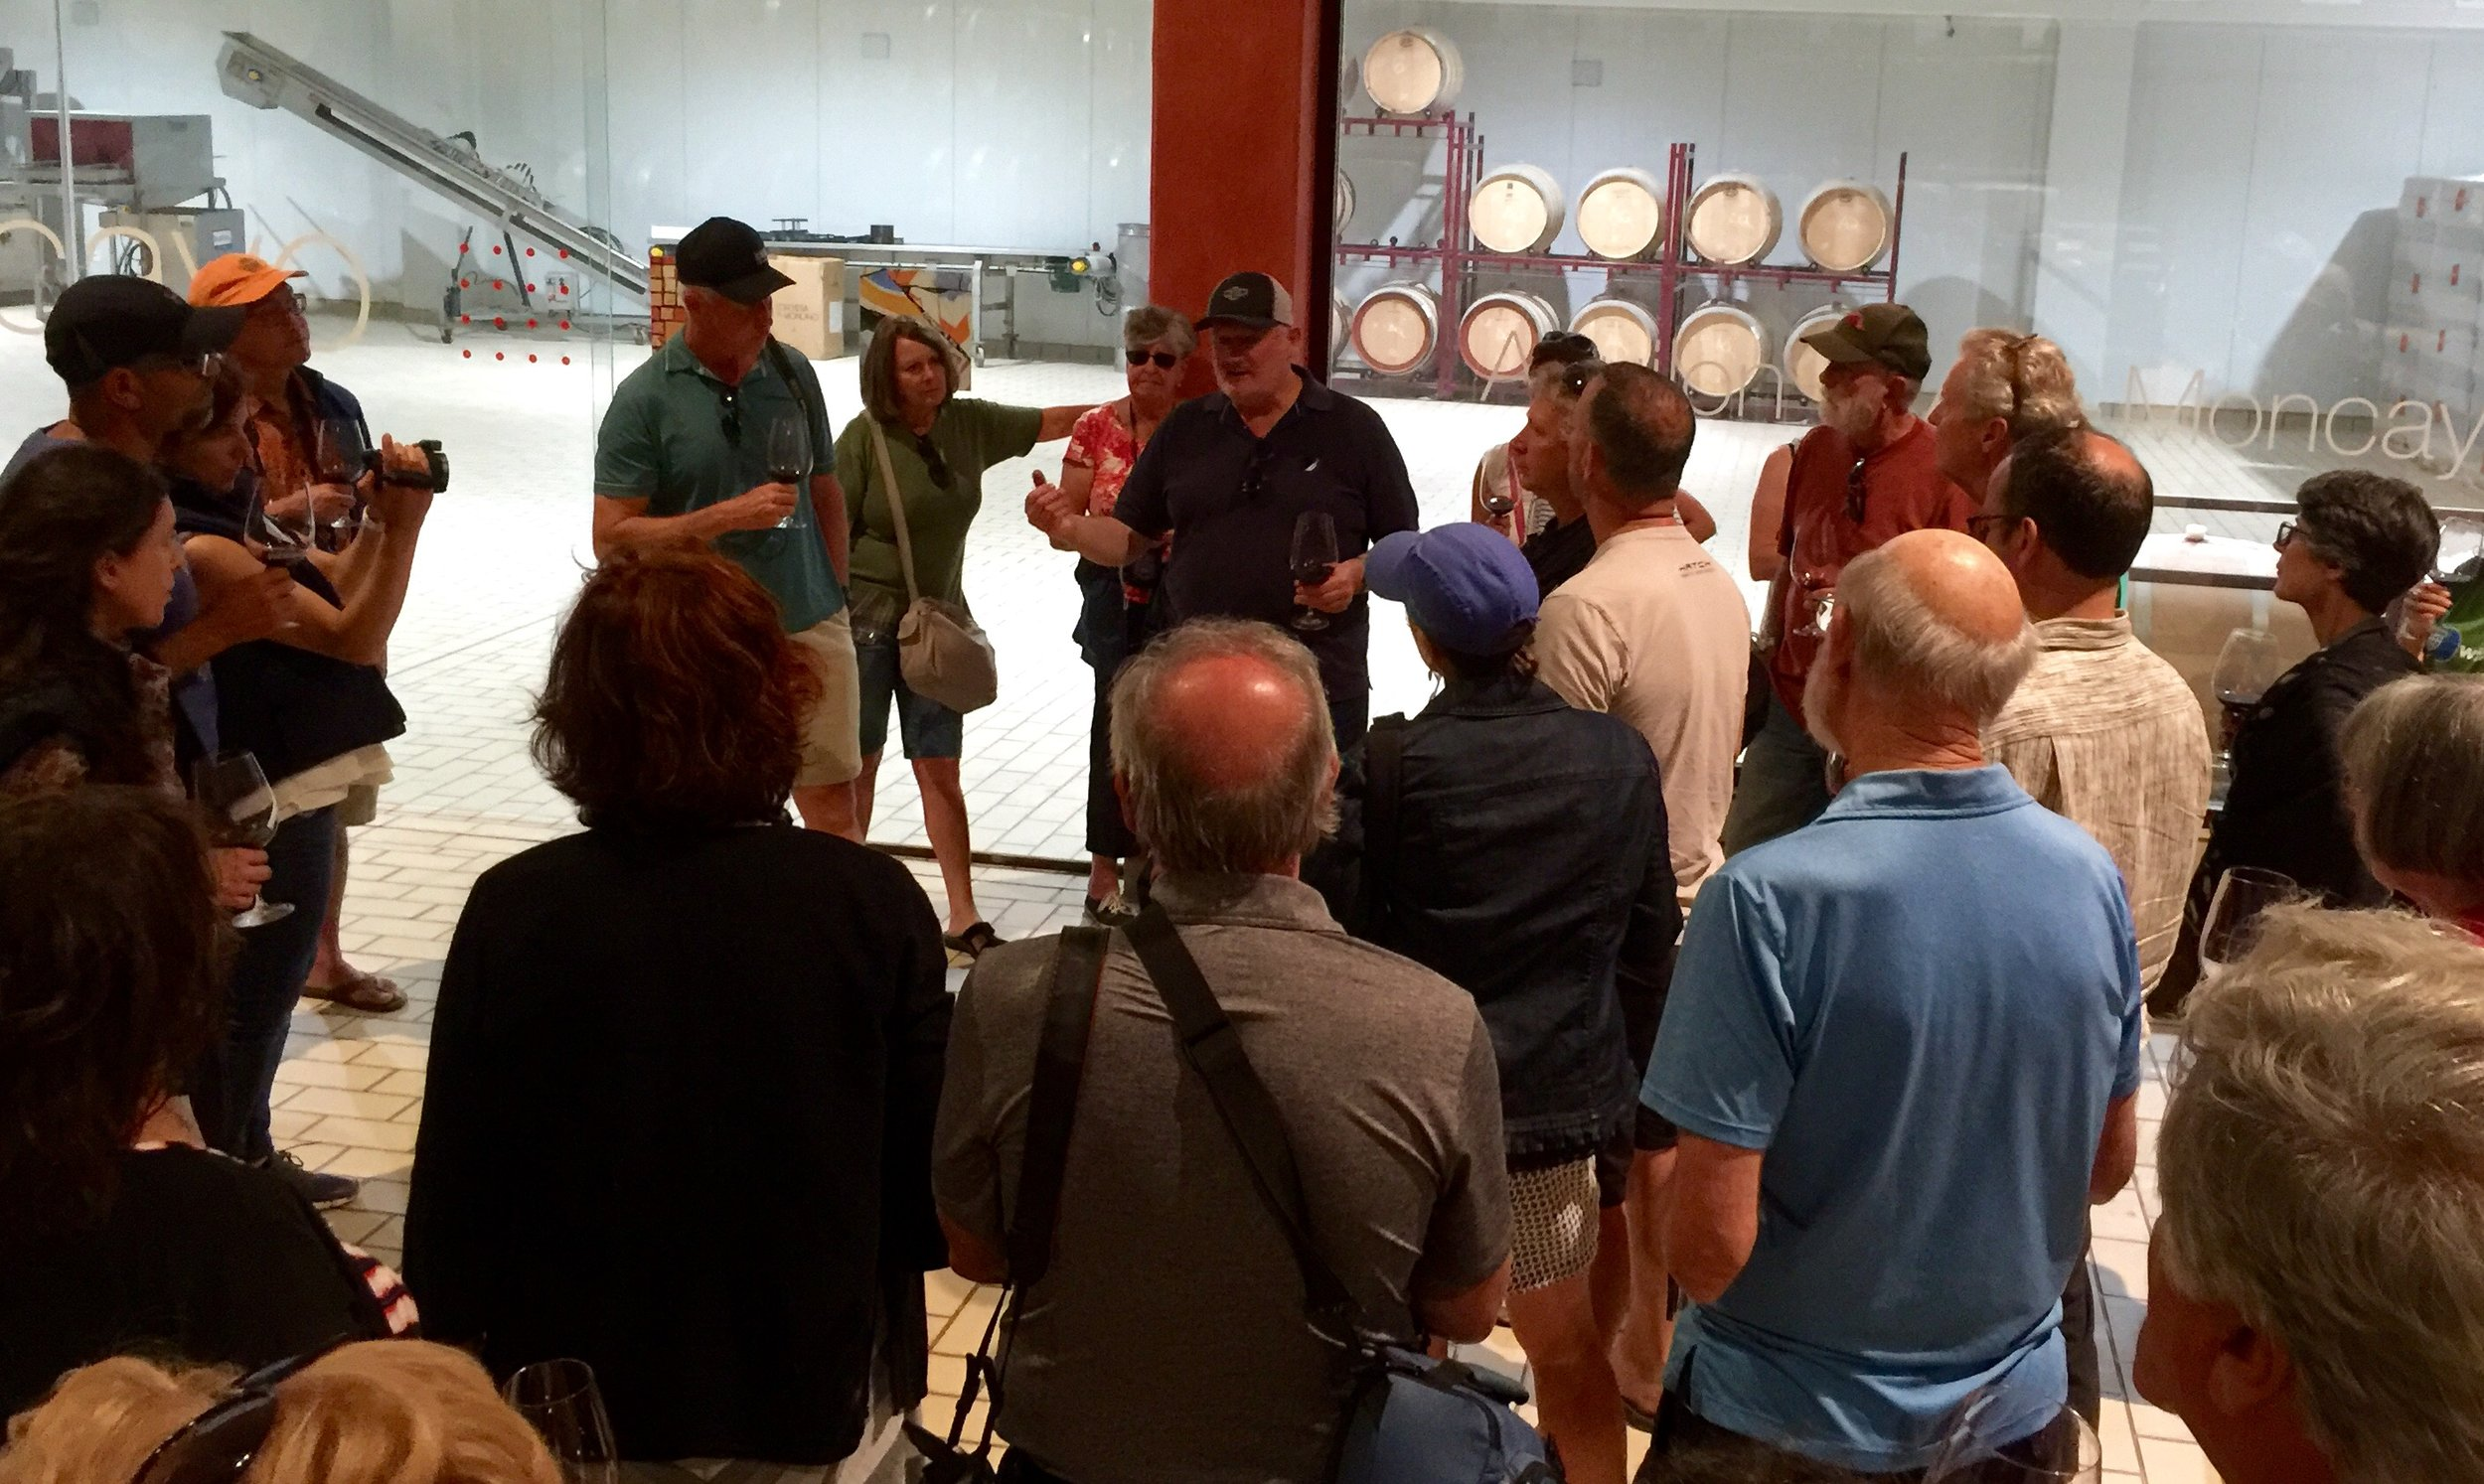 The fourth tour got a special surprise visit from rock star winemaker Chris Ringland who was in town from Australia to make the final Alto Moncayo blend.